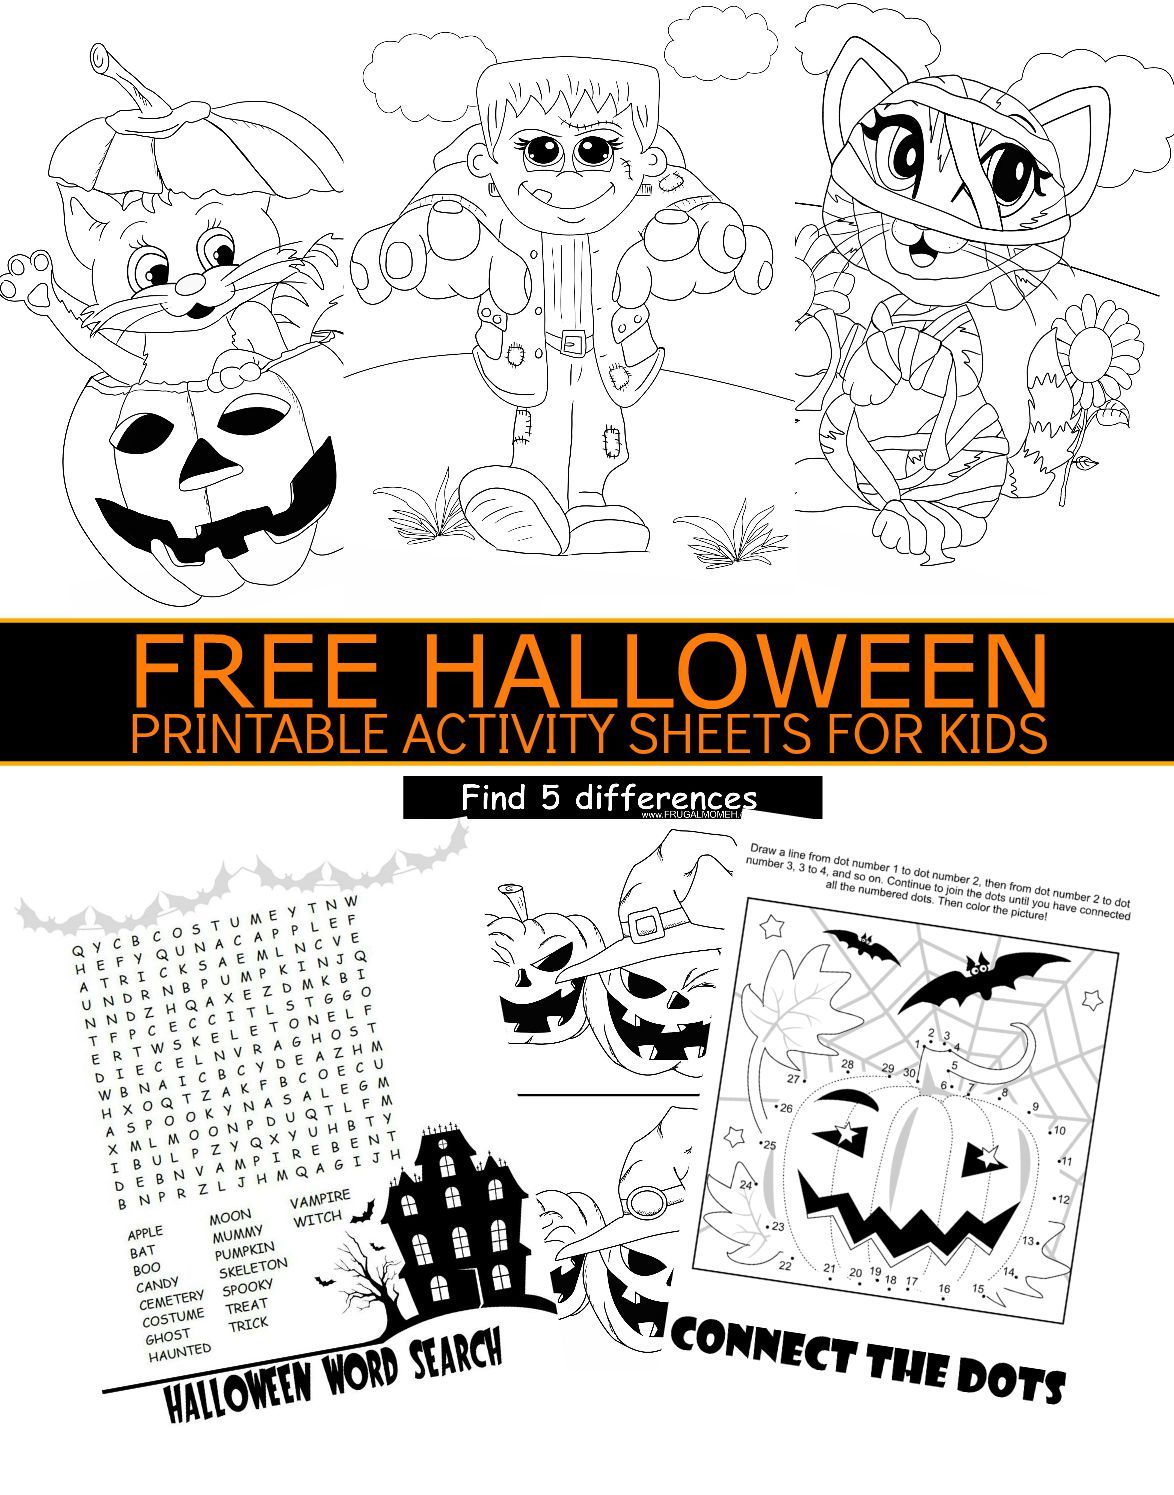 free halloween printable activity sheets for kids - Activity Sheets For Kids